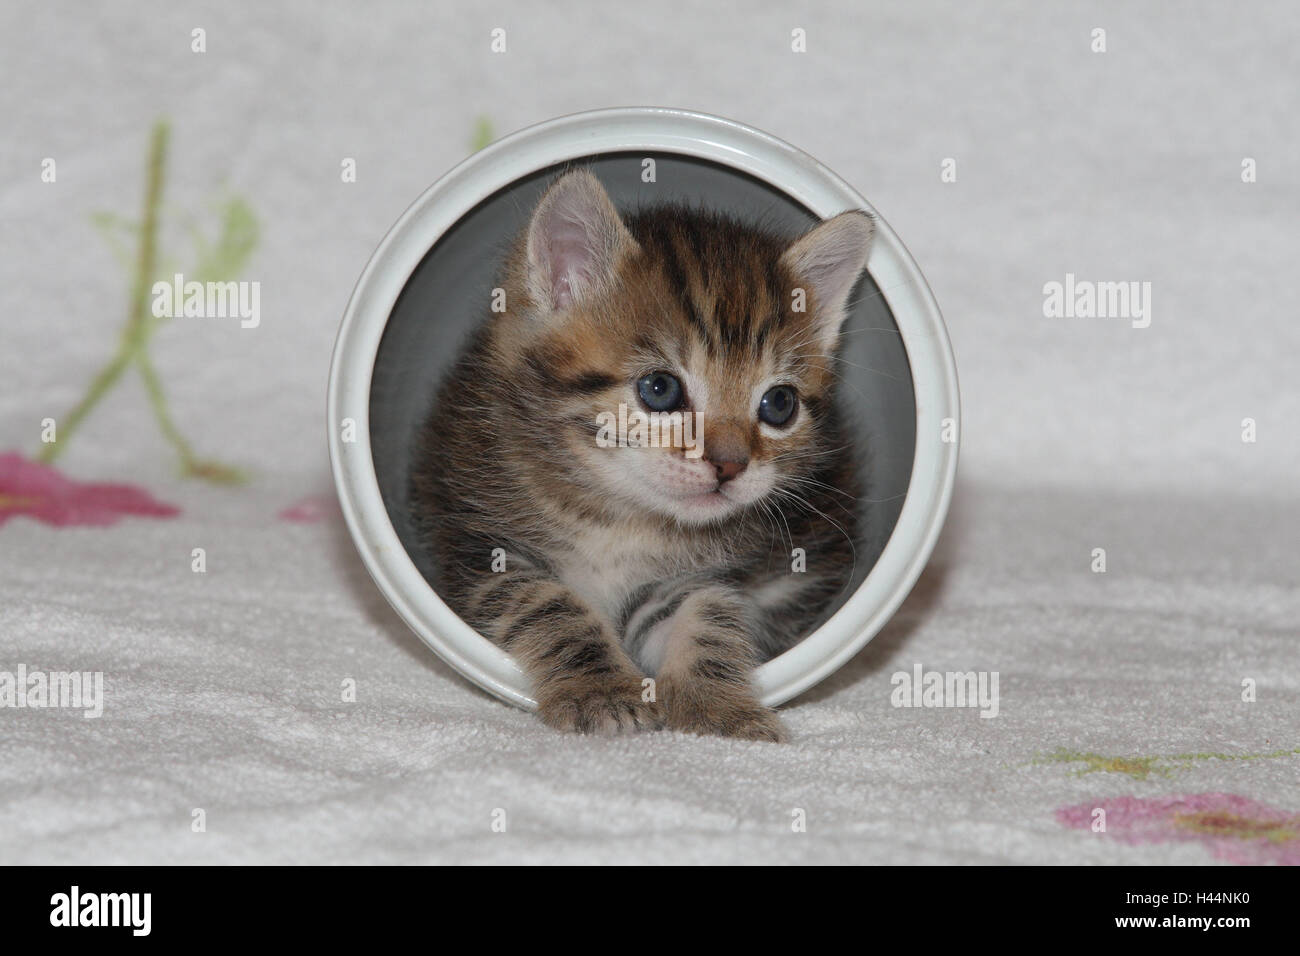 Pot, cat, young, herauskrabbeln, bed, animals, mammals, pets, small cats, Felidae, domesticates, house cat, young - Stock Image